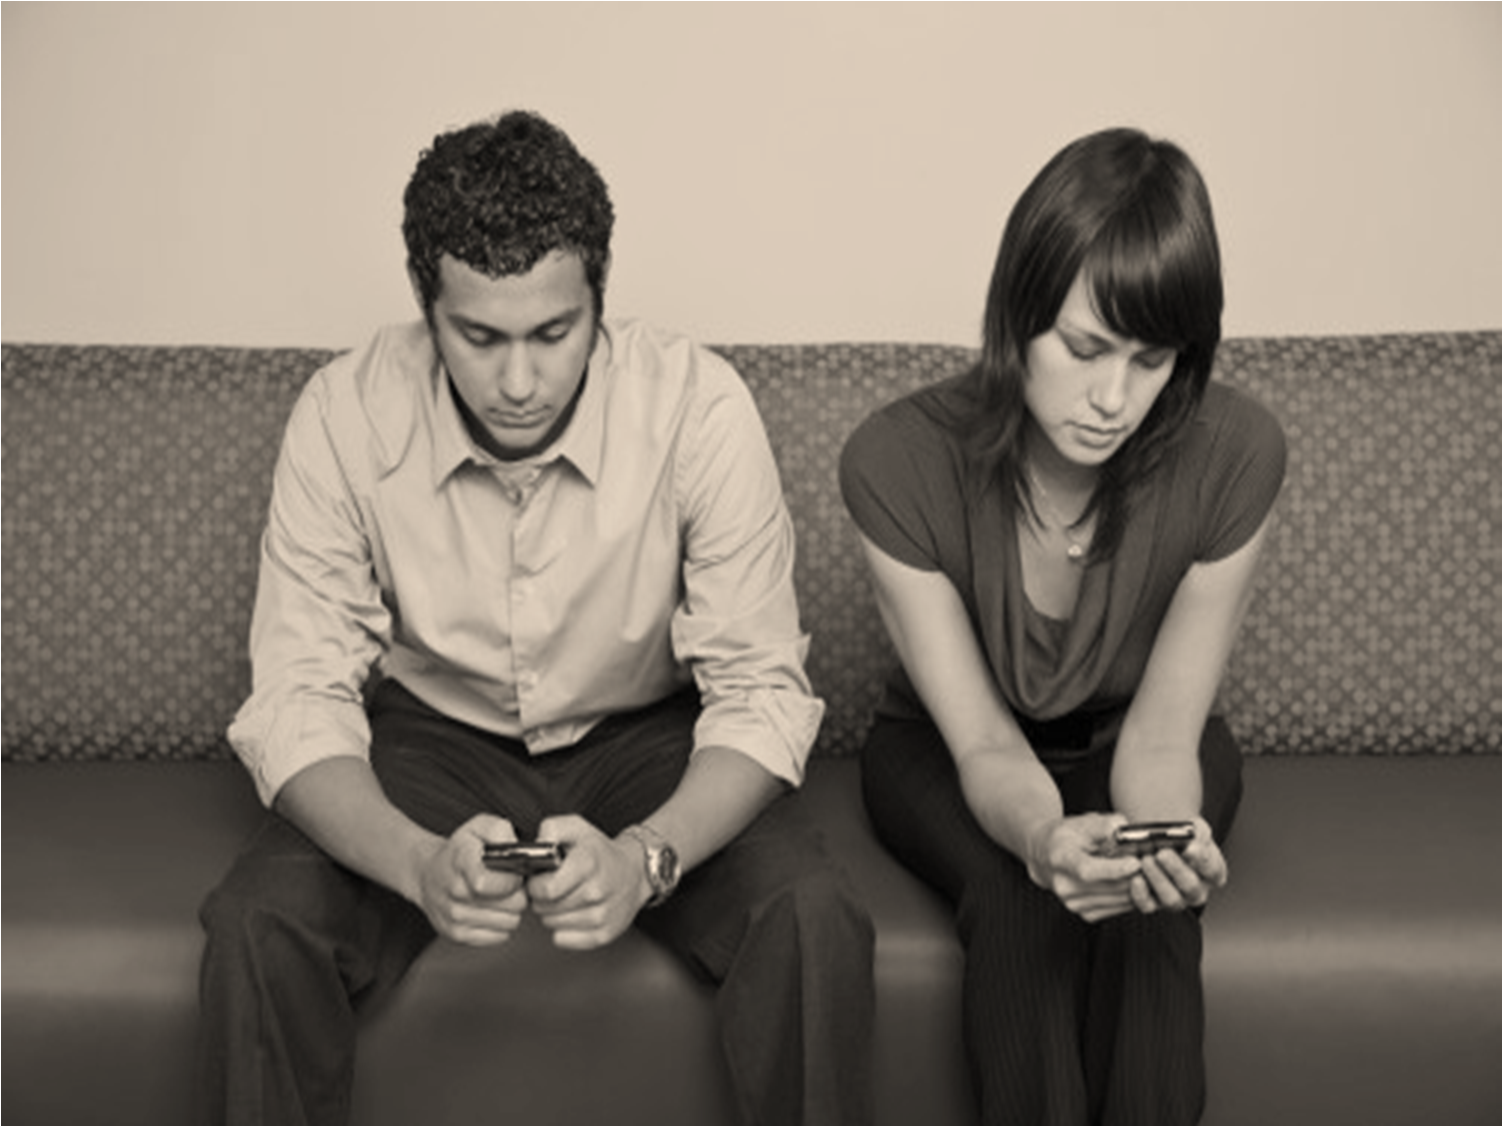 2 People Texting